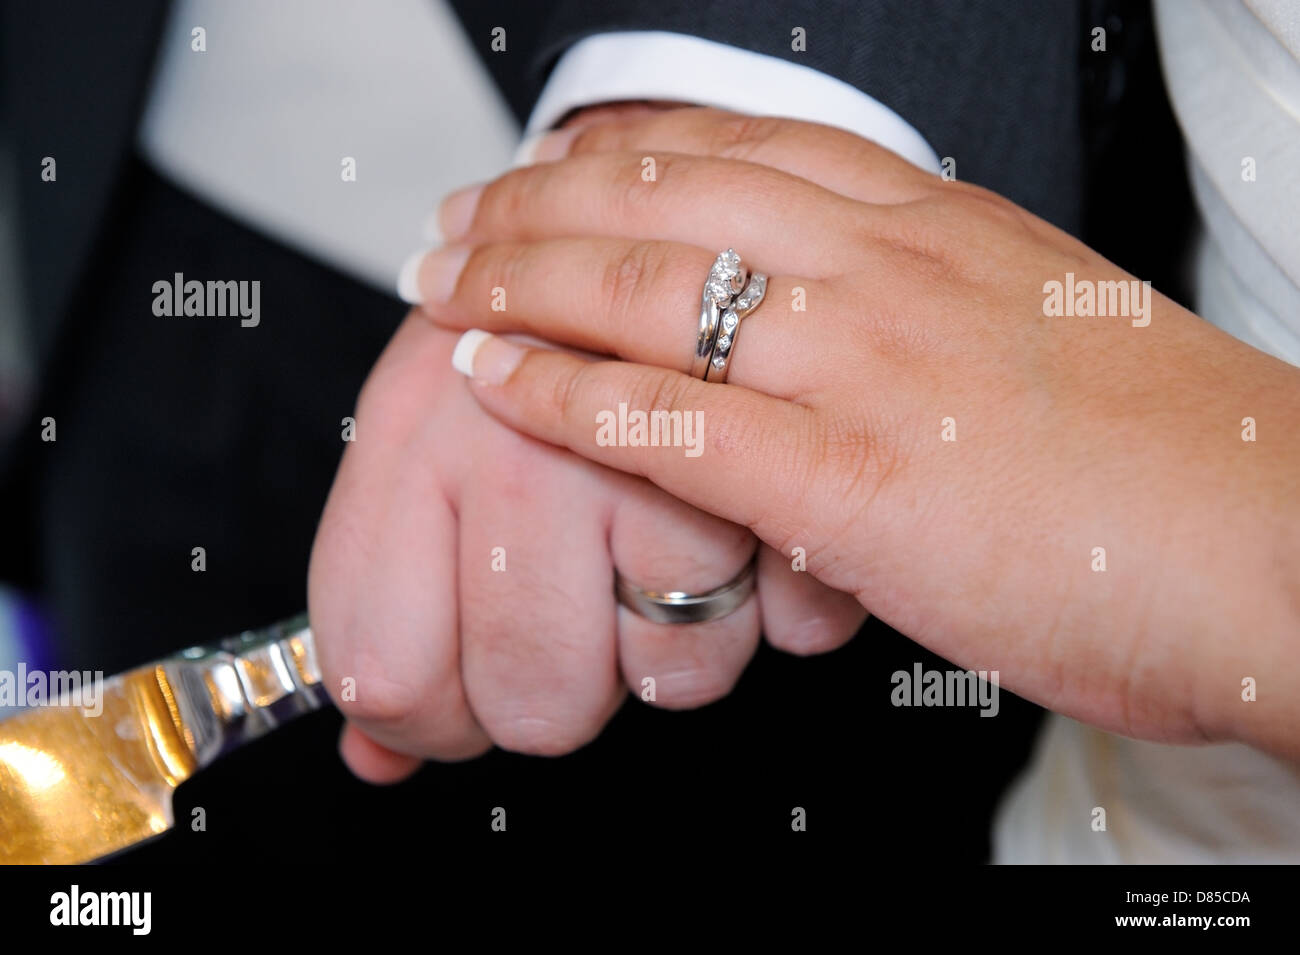 Husband Wife Wedding Rings Stock Photos & Husband Wife Wedding Rings ...